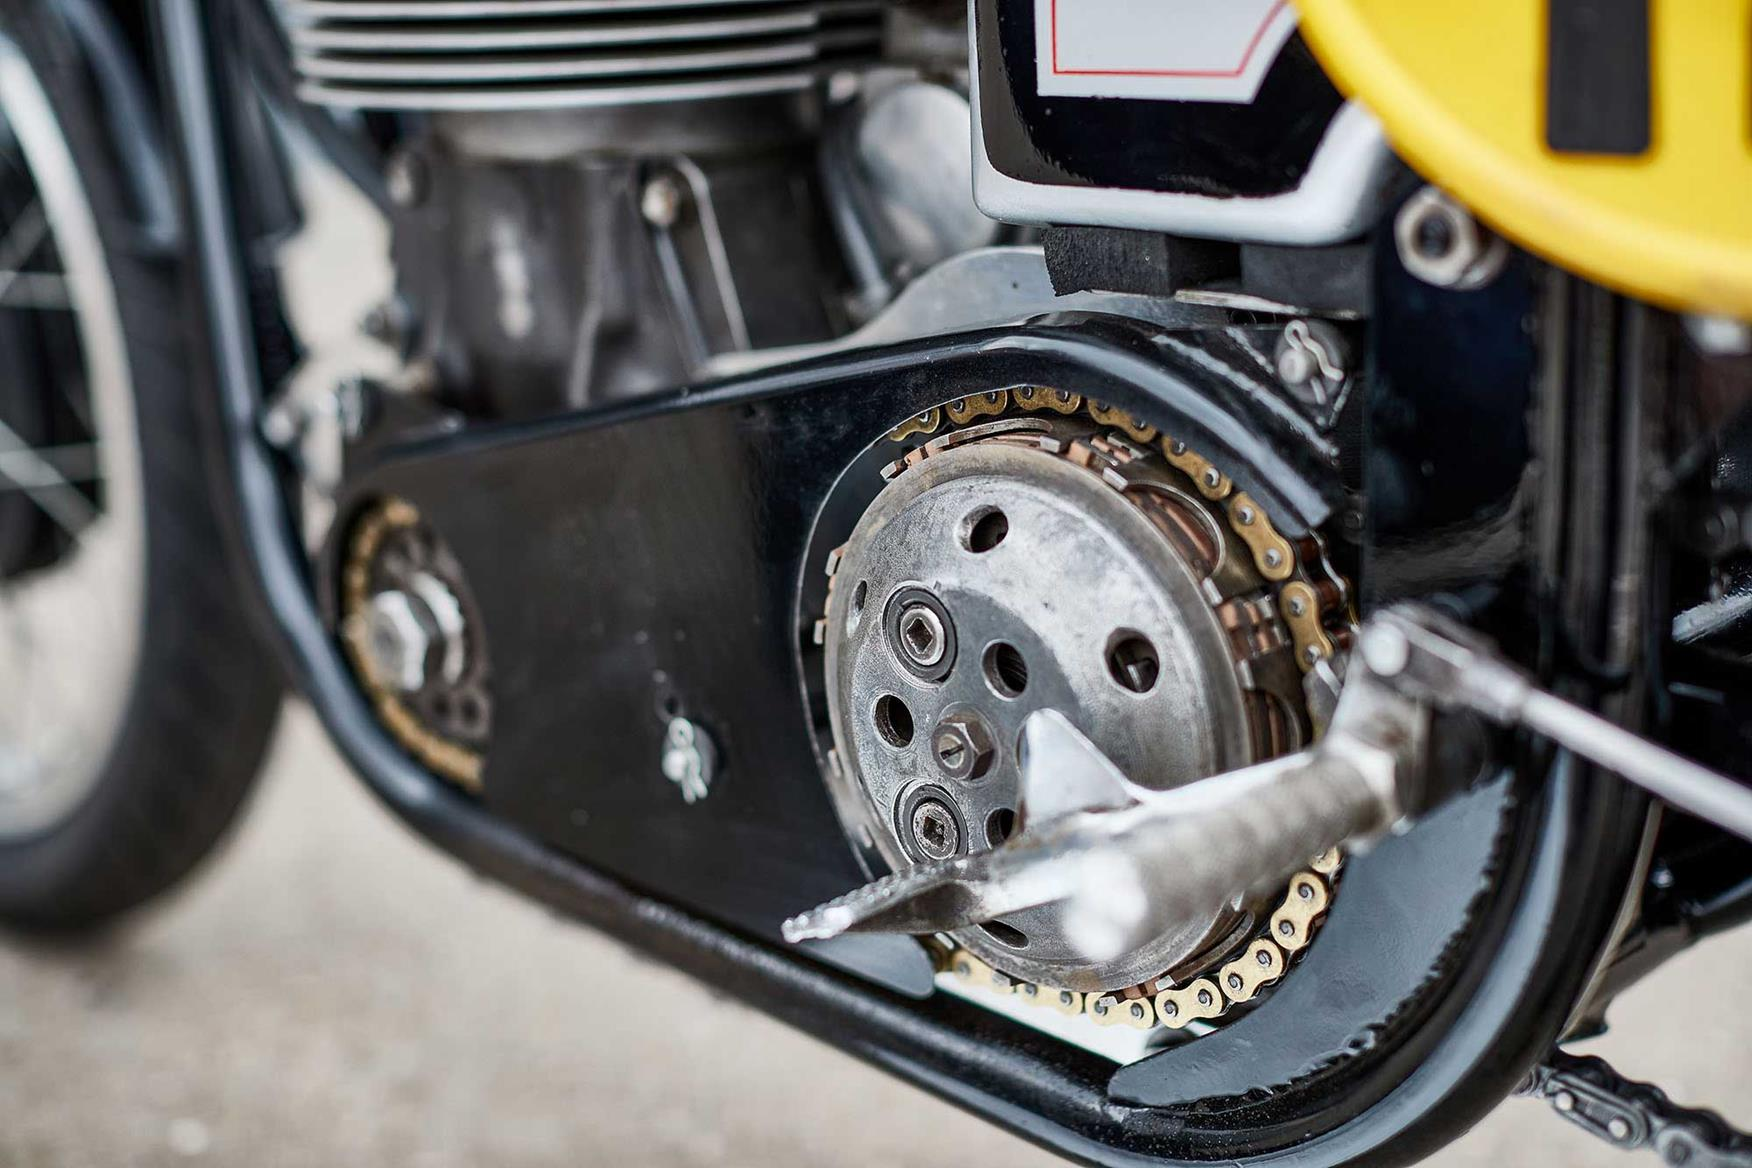 It's easy to see why early Norton racers rode on the clutch